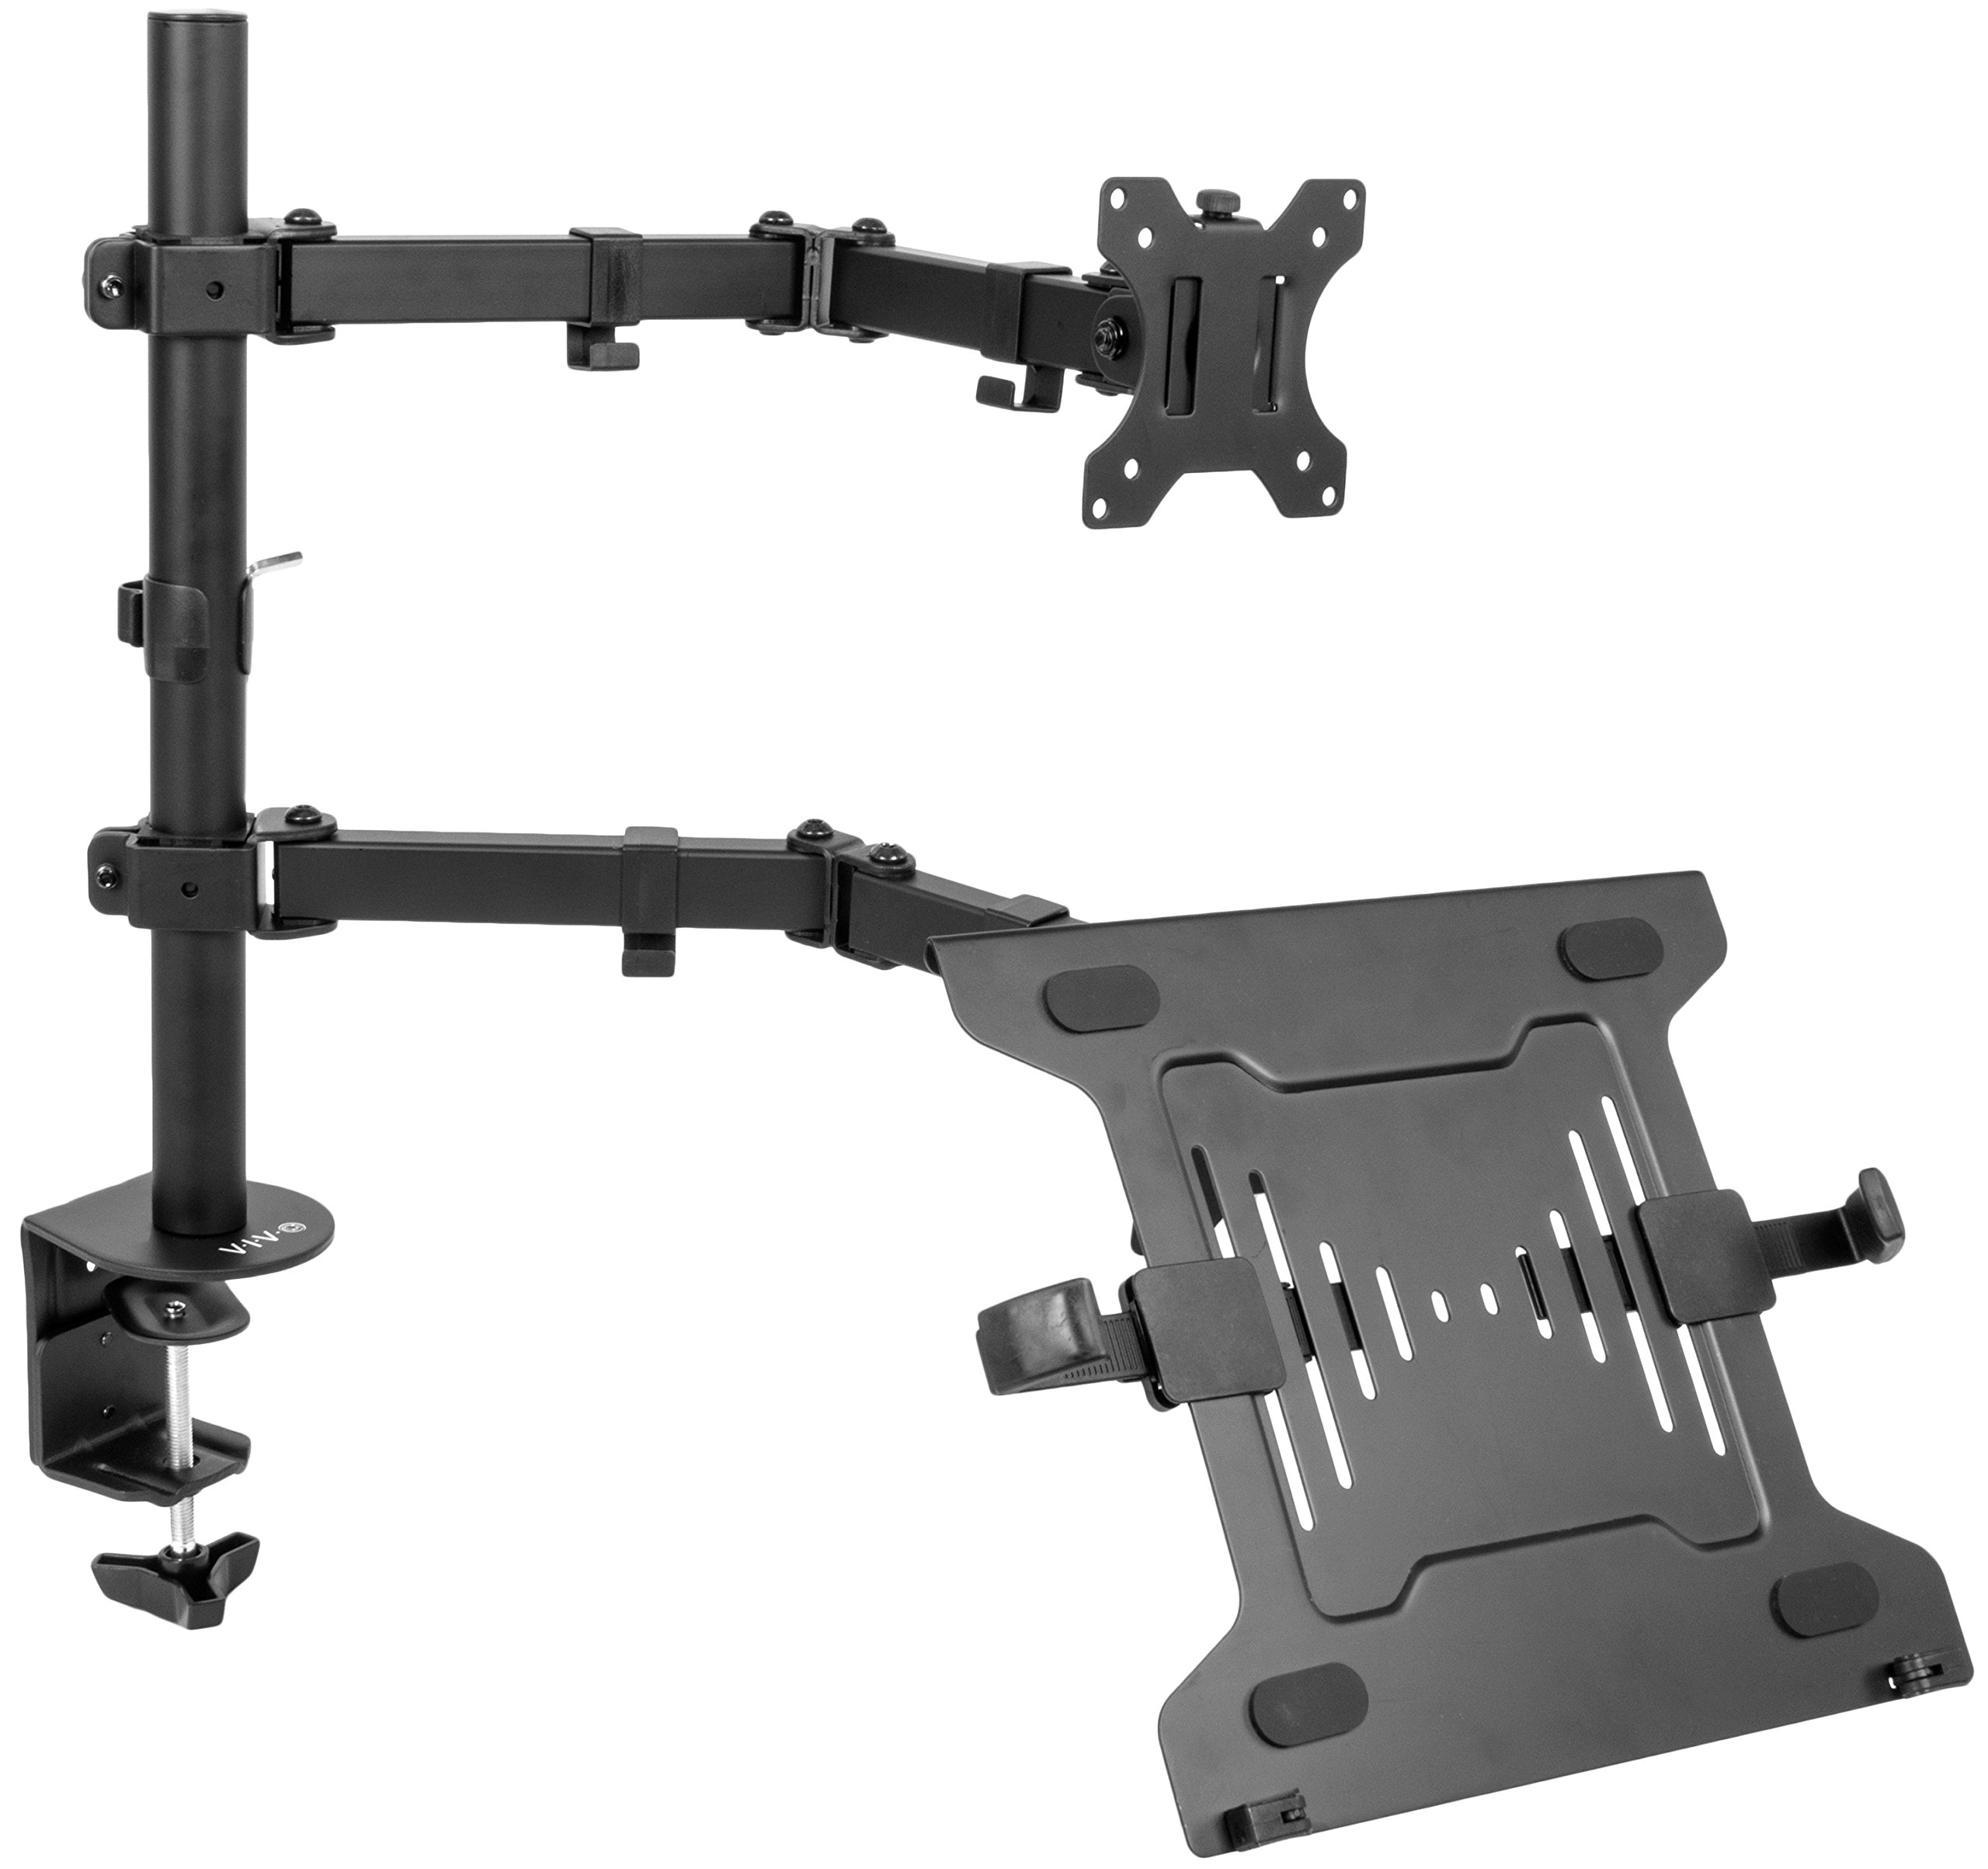 VIVO Full Motion Monitor + Laptop Desk Mount Articulating Double Center Arm Joint VESA Stand | Fits 13'' to 32'' Screen (STAND-V102C)